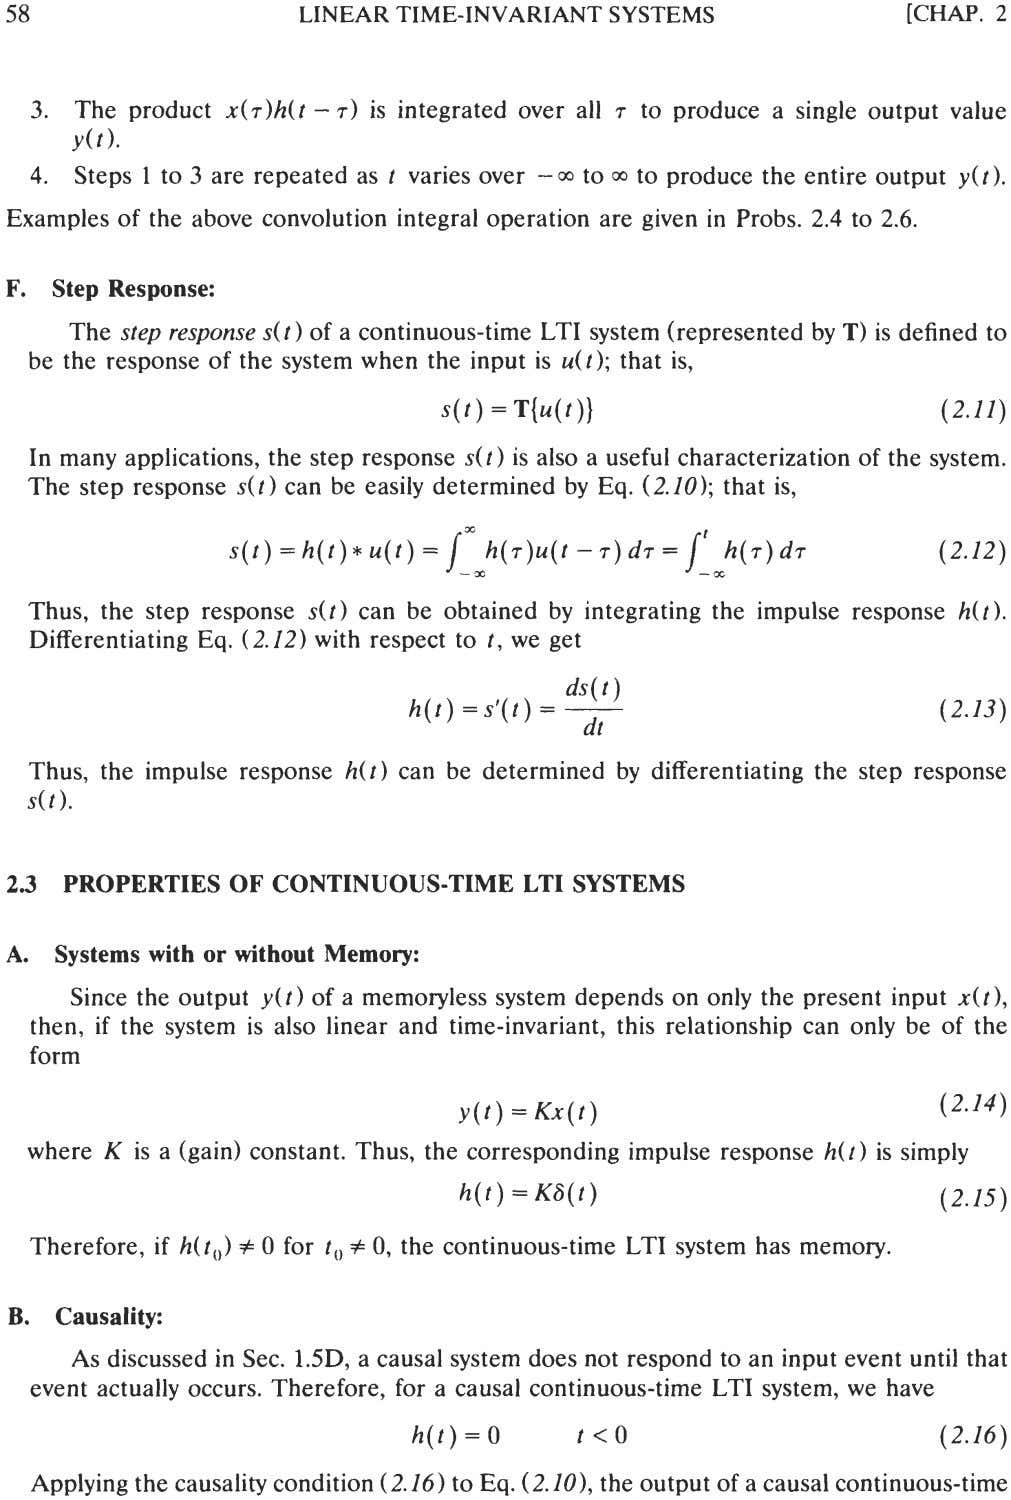 58 LINEAR TIME-INVARIANT SYSTEMS [CHAP. 2 3. The product x(~)h(t- T) is integrated over all